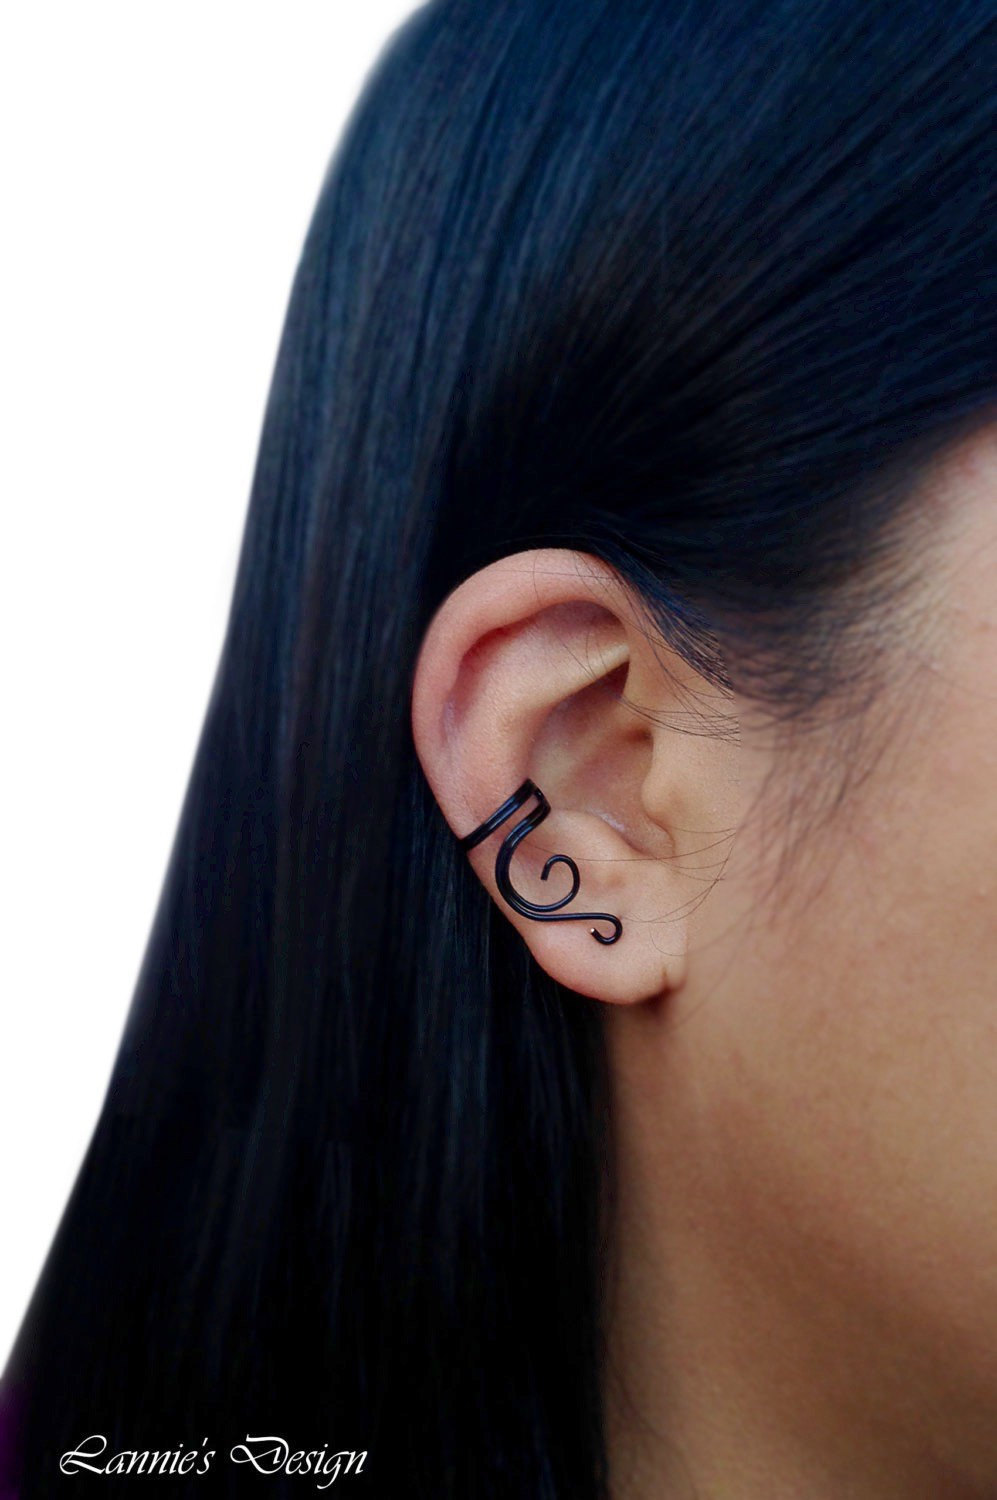 Black Vine Ear Cuff, Cartilage No Piercing Earrings